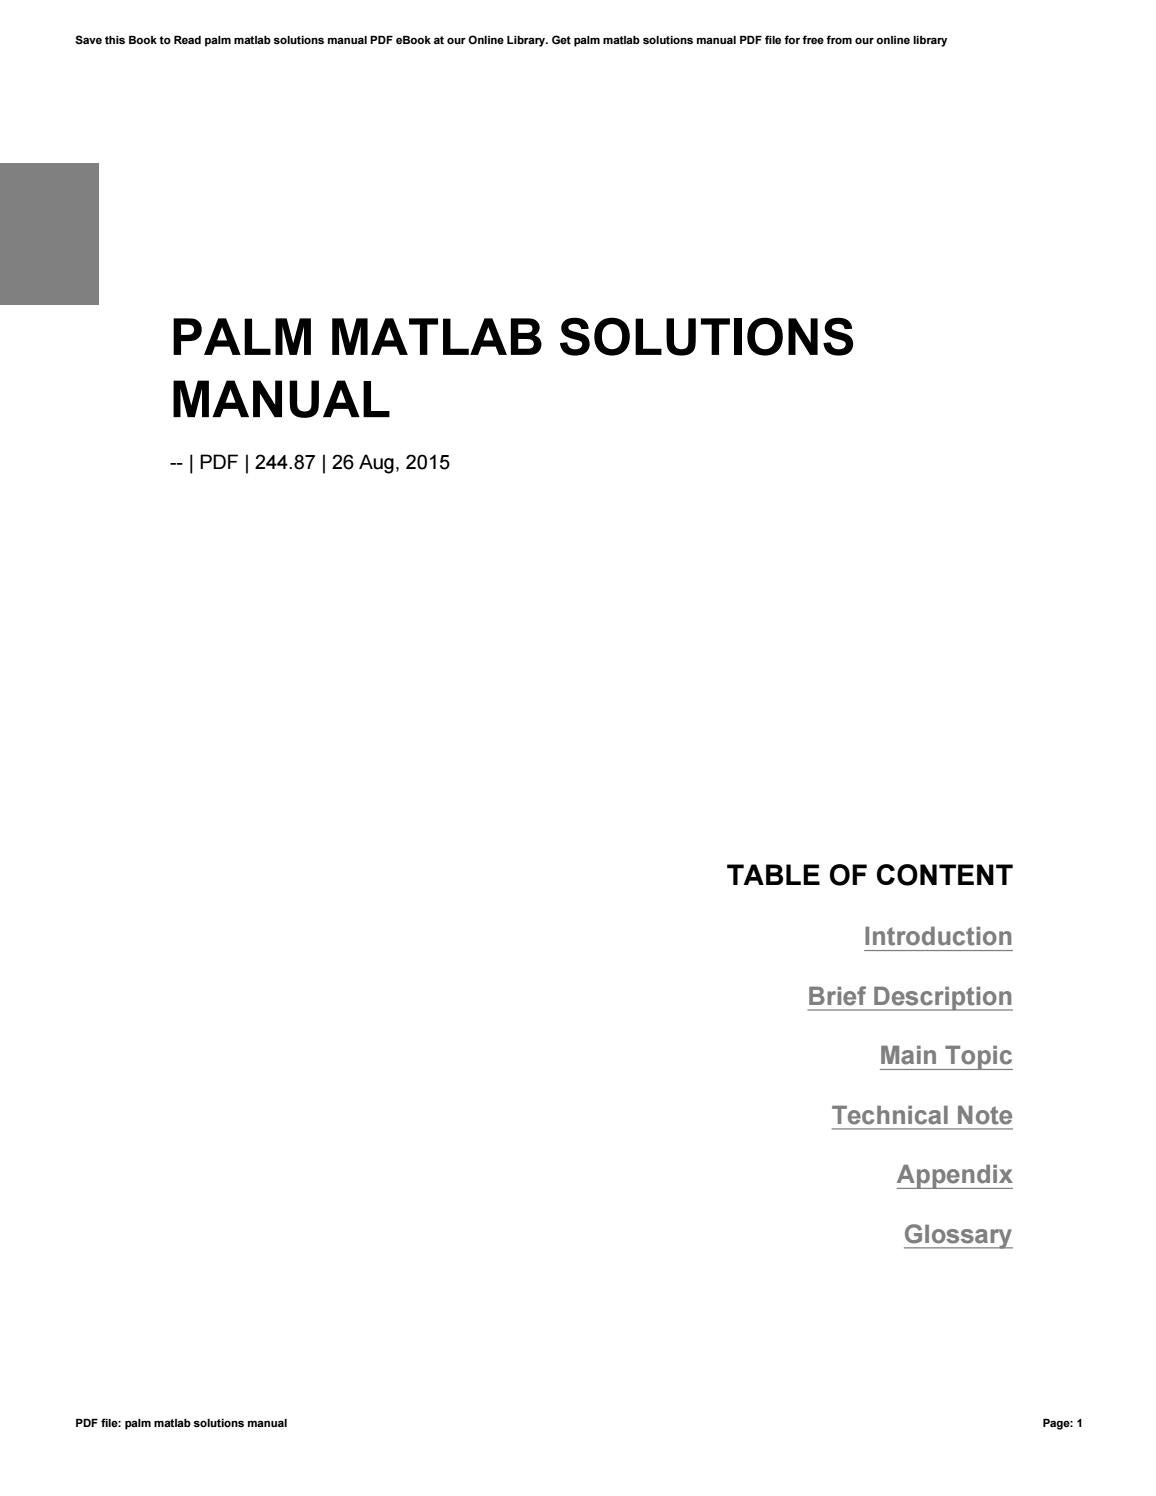 Palm Matlab Solutions Manual By Zhcne31 Issuu